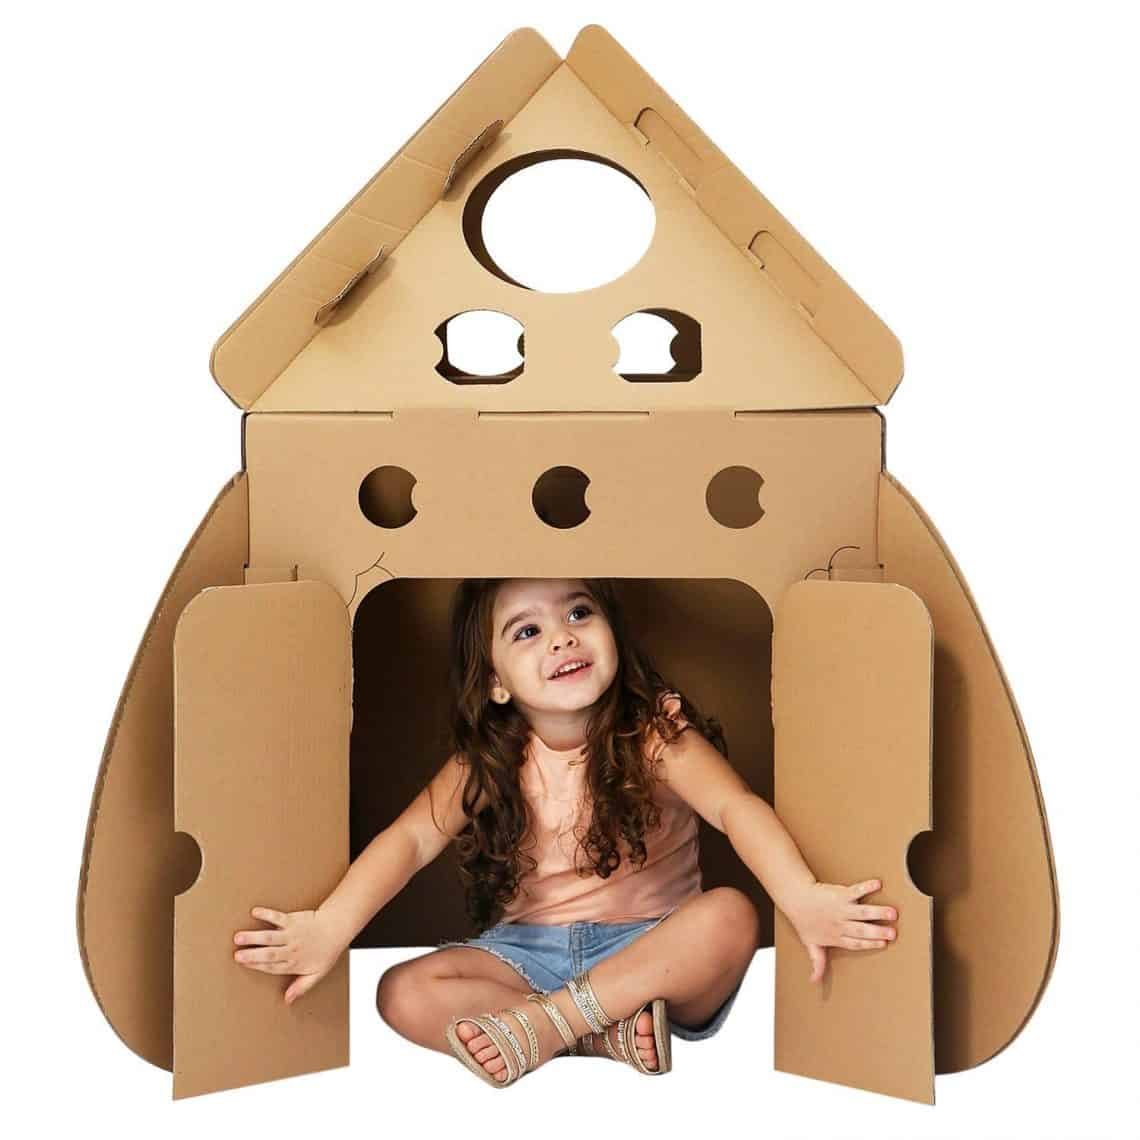 spaceship 1140x1140 - Rainy Day Activities to Keep Kids Busy and Mom Hands Free